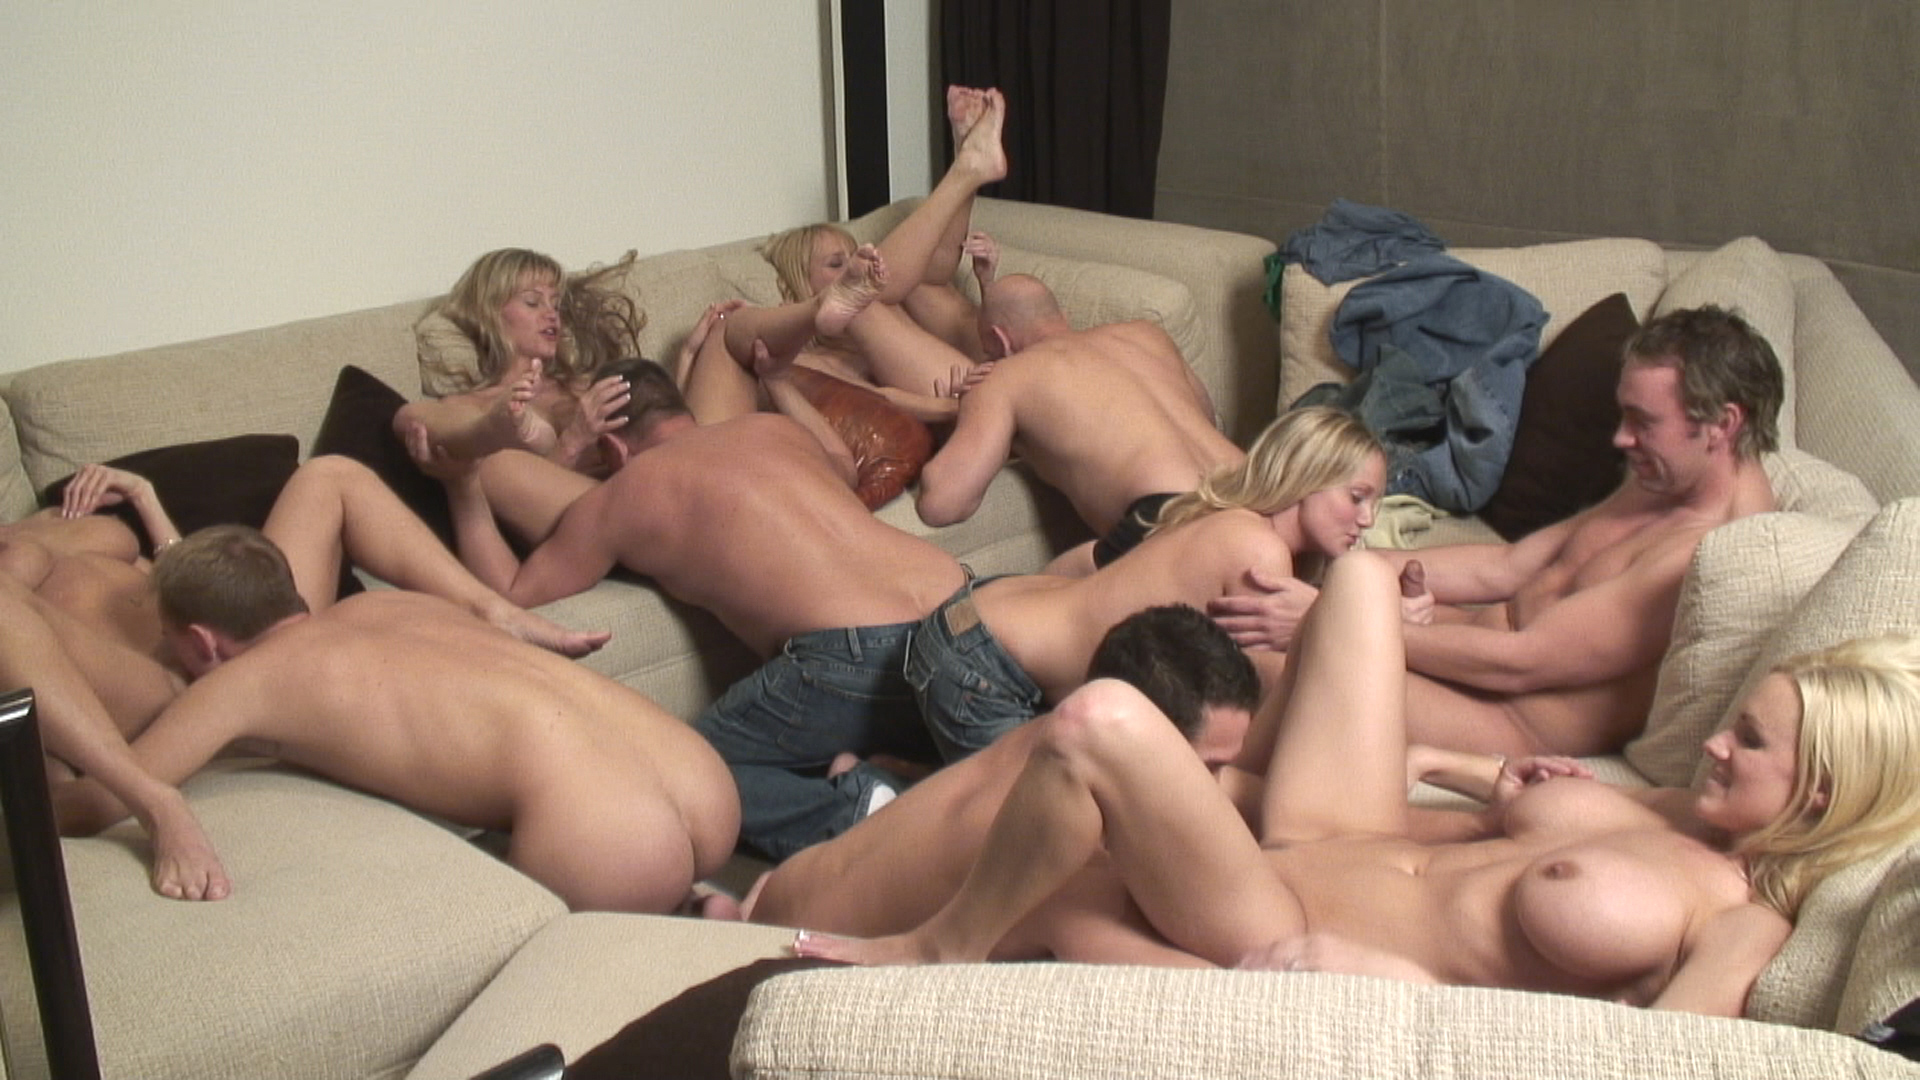 Party Game Leads To A Huge Orgy